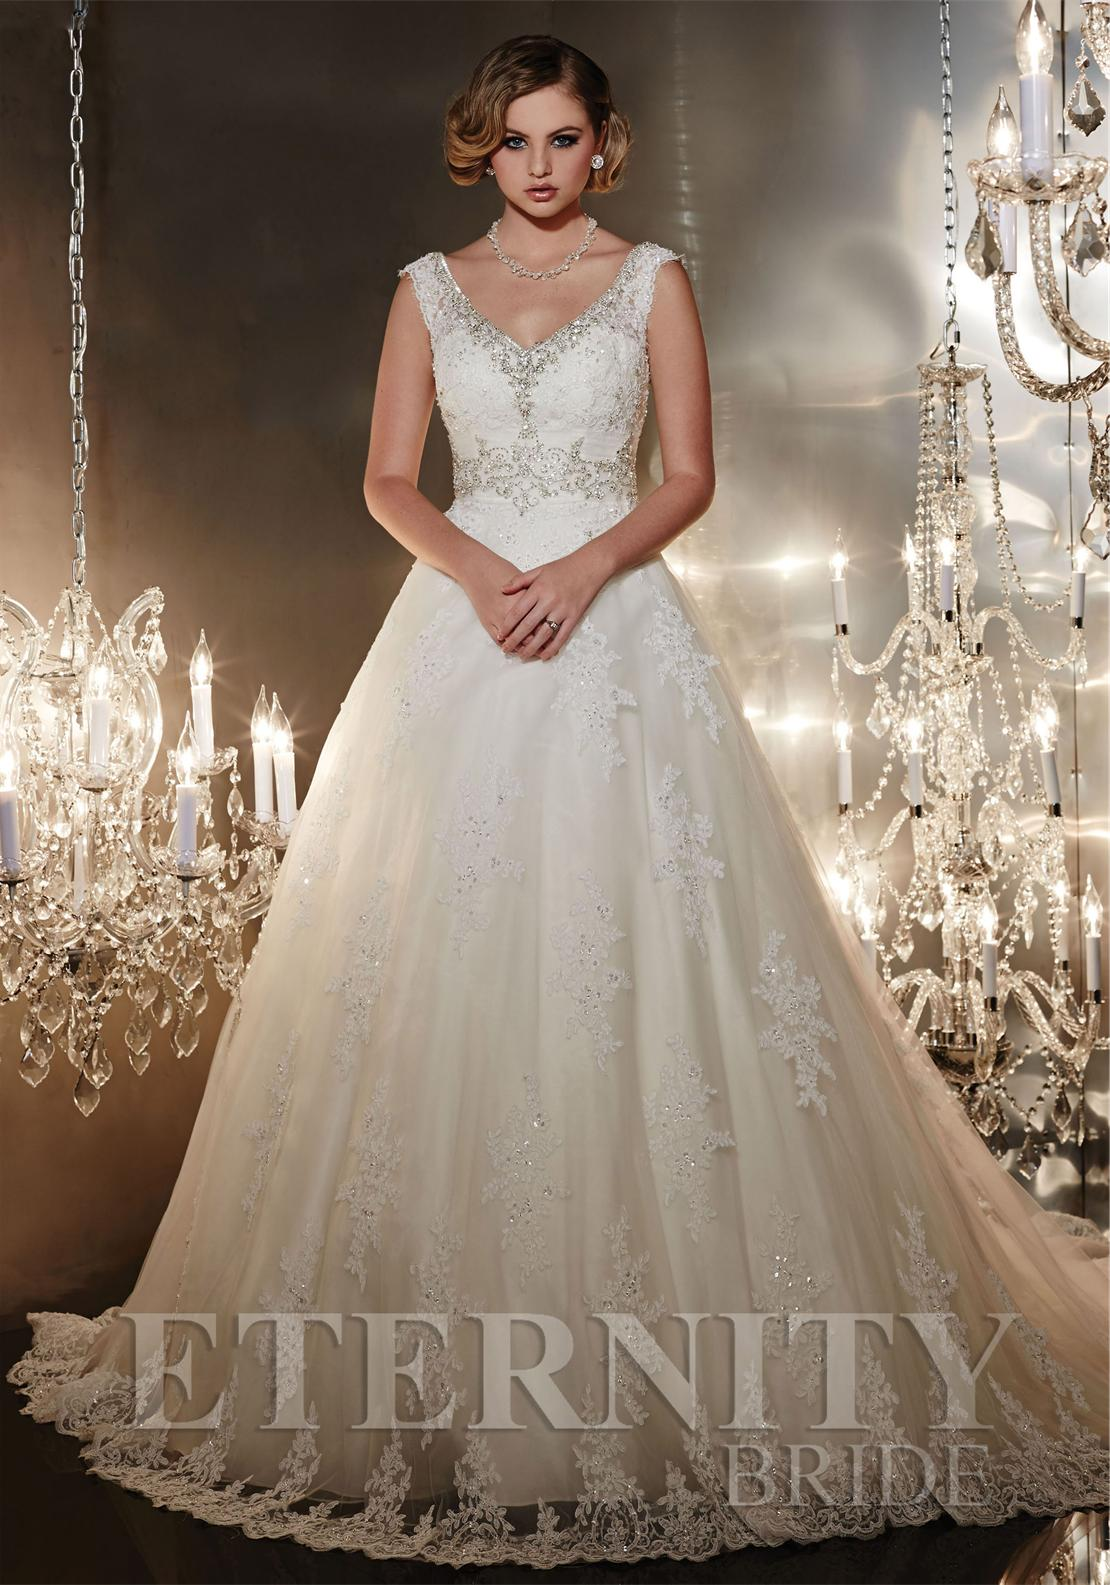 ETERNITY BRIDAL 10 IVO